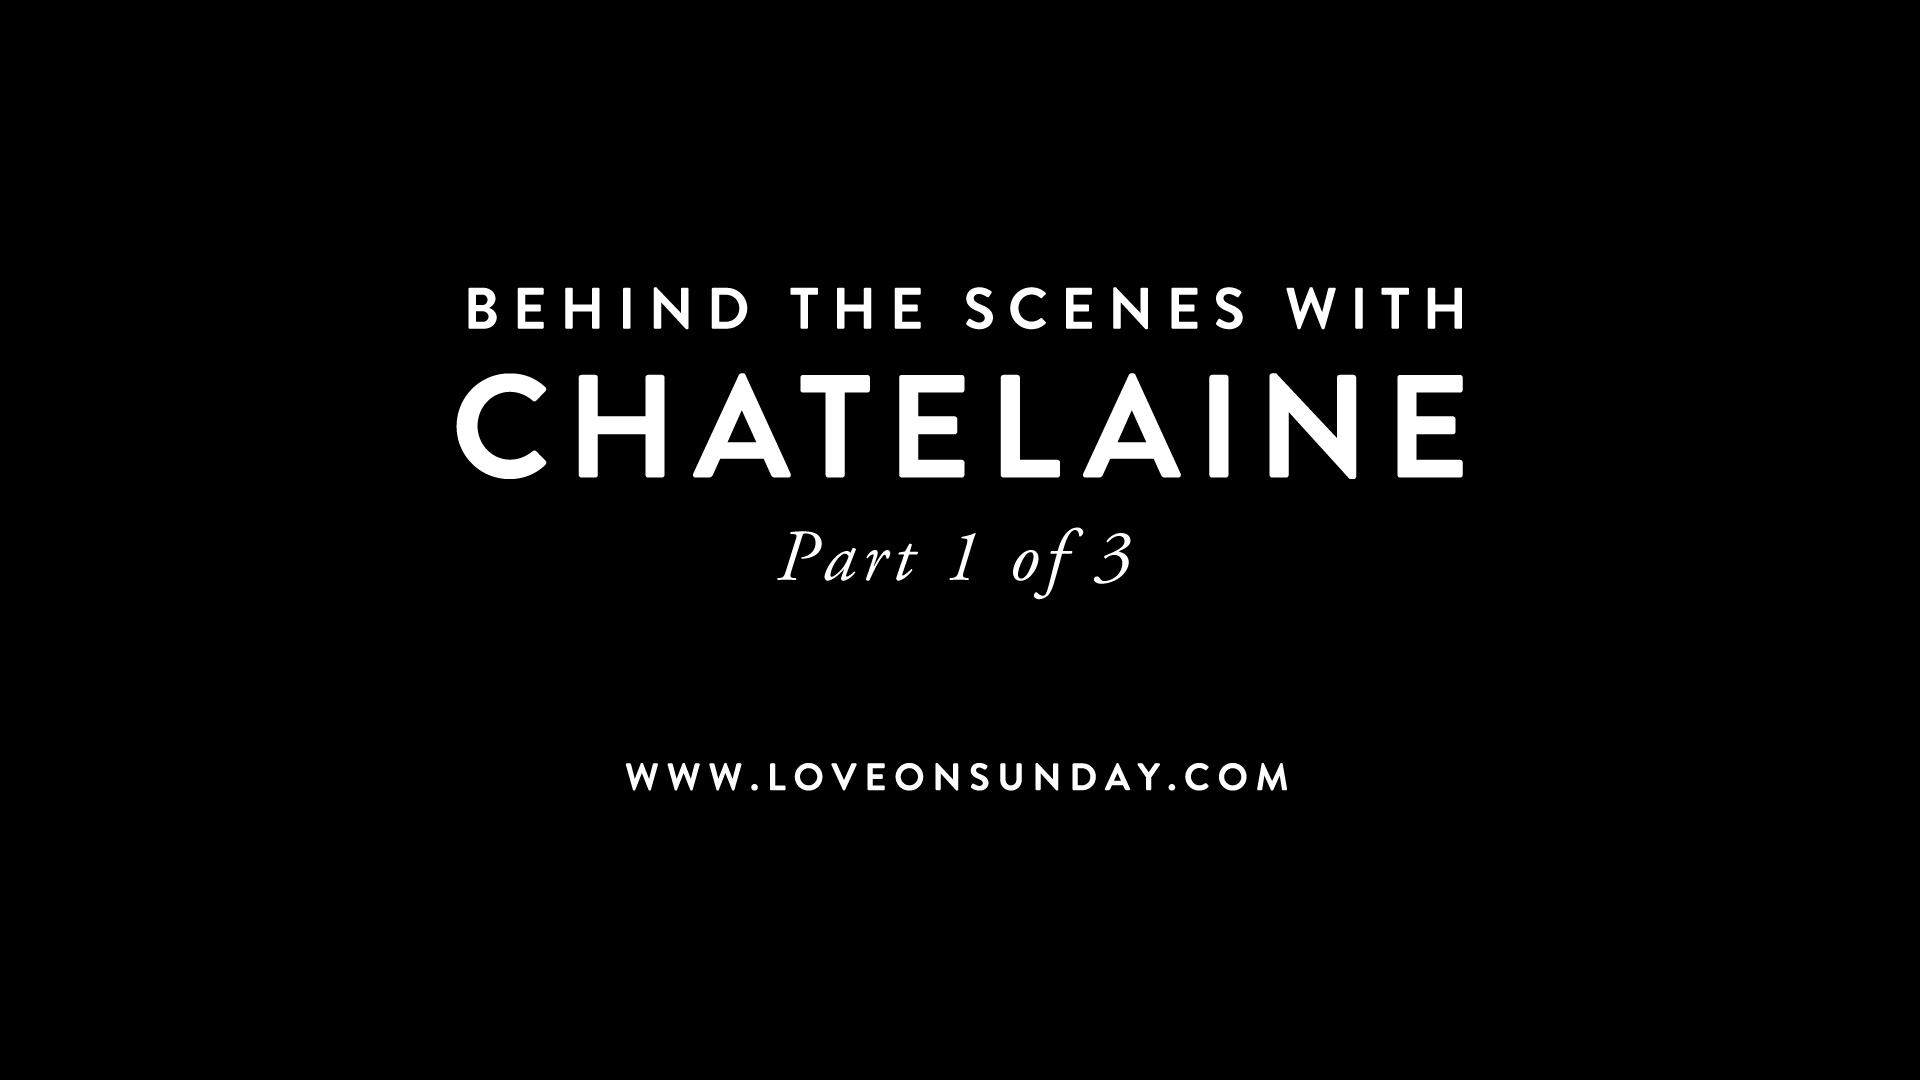 behind the scenes with Chatelaine